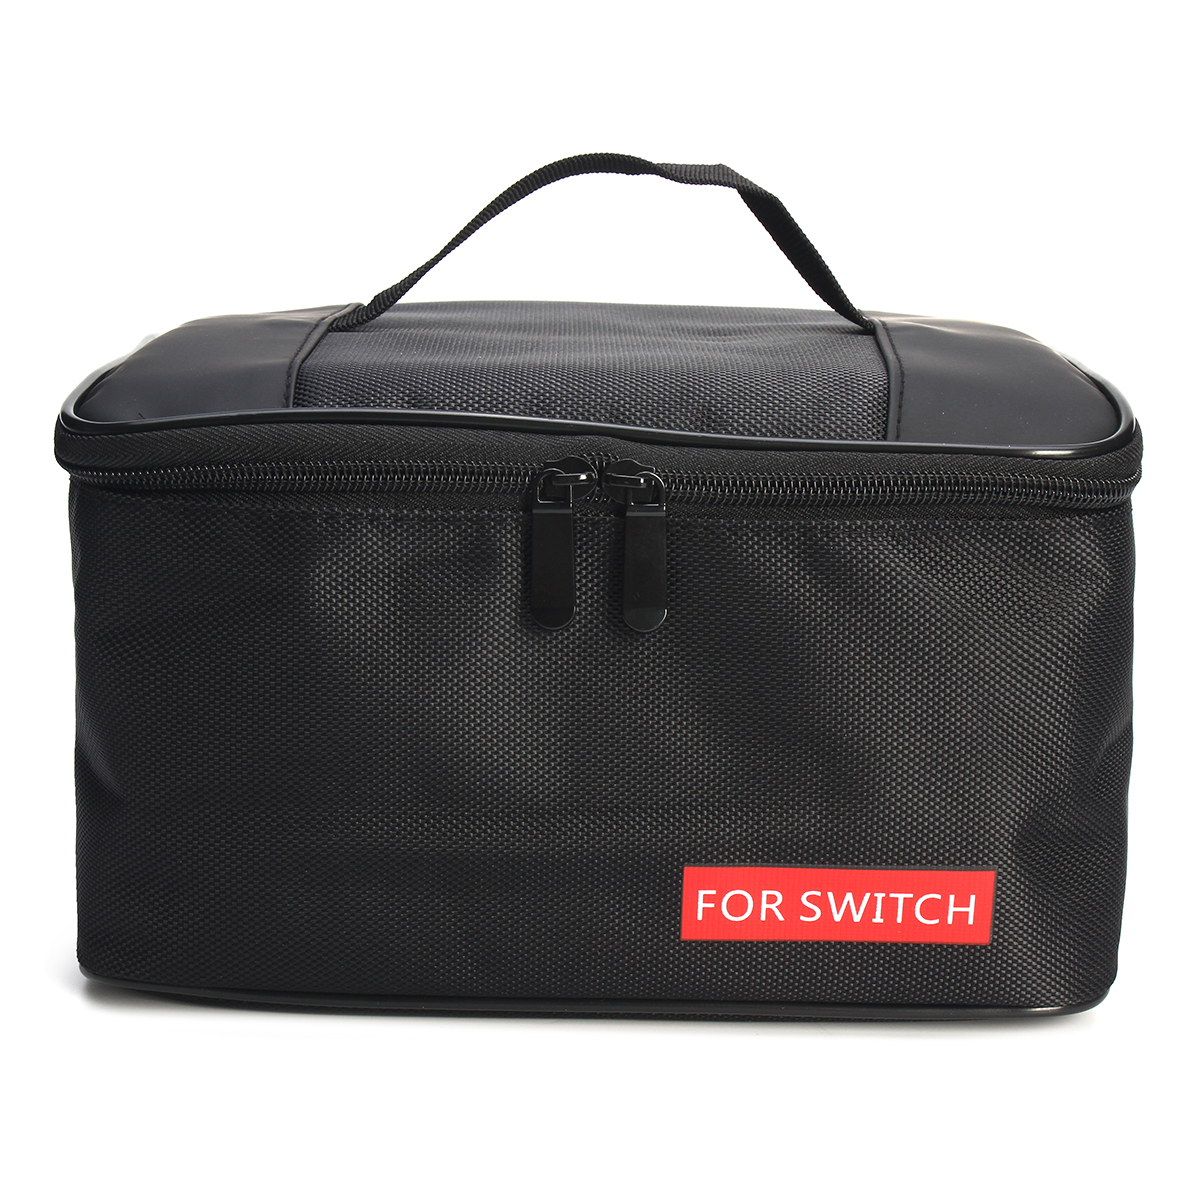 Travel Bag Case Protective Storage Bag Hard Shell For Nintendo Switch Video Game Console